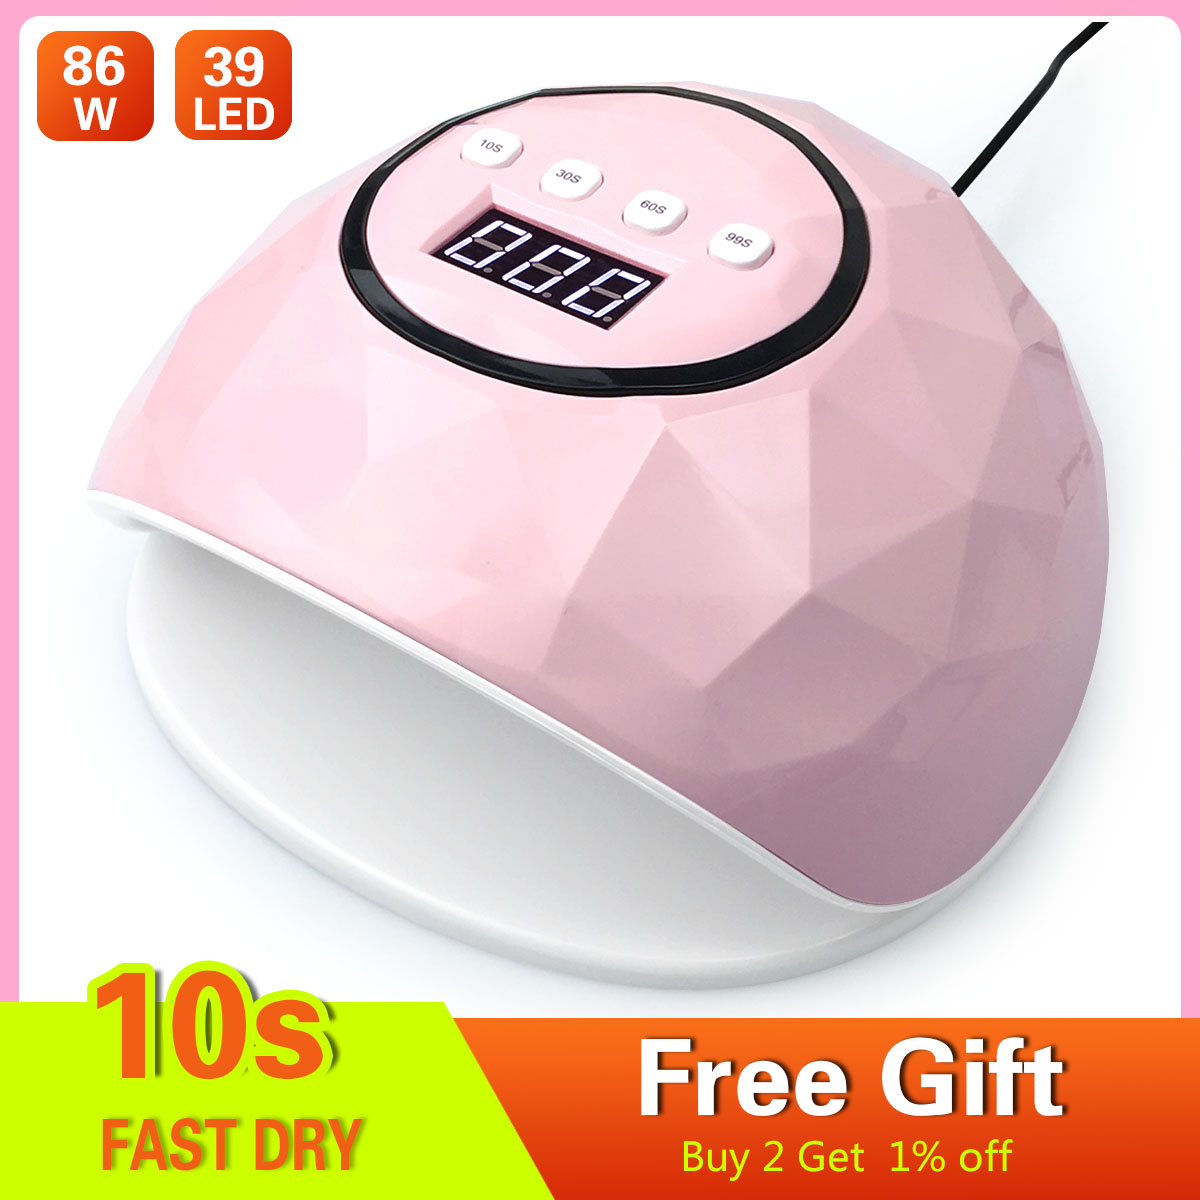 86W UV LED Lamp 39 Leds Nail Dryer For Curing UV Gel Nail Polish With Sensor Nail Art Machine Manicure Tool